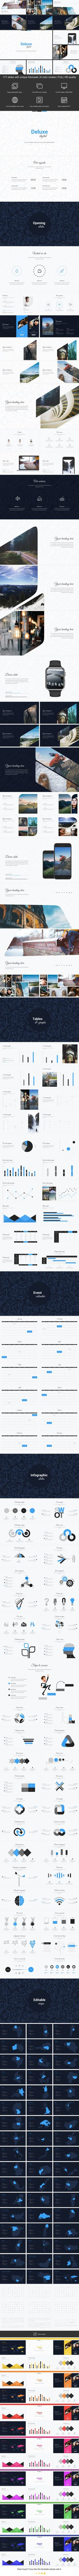 Deluxe Digital Powerpoint Template - Business PowerPoint Templates